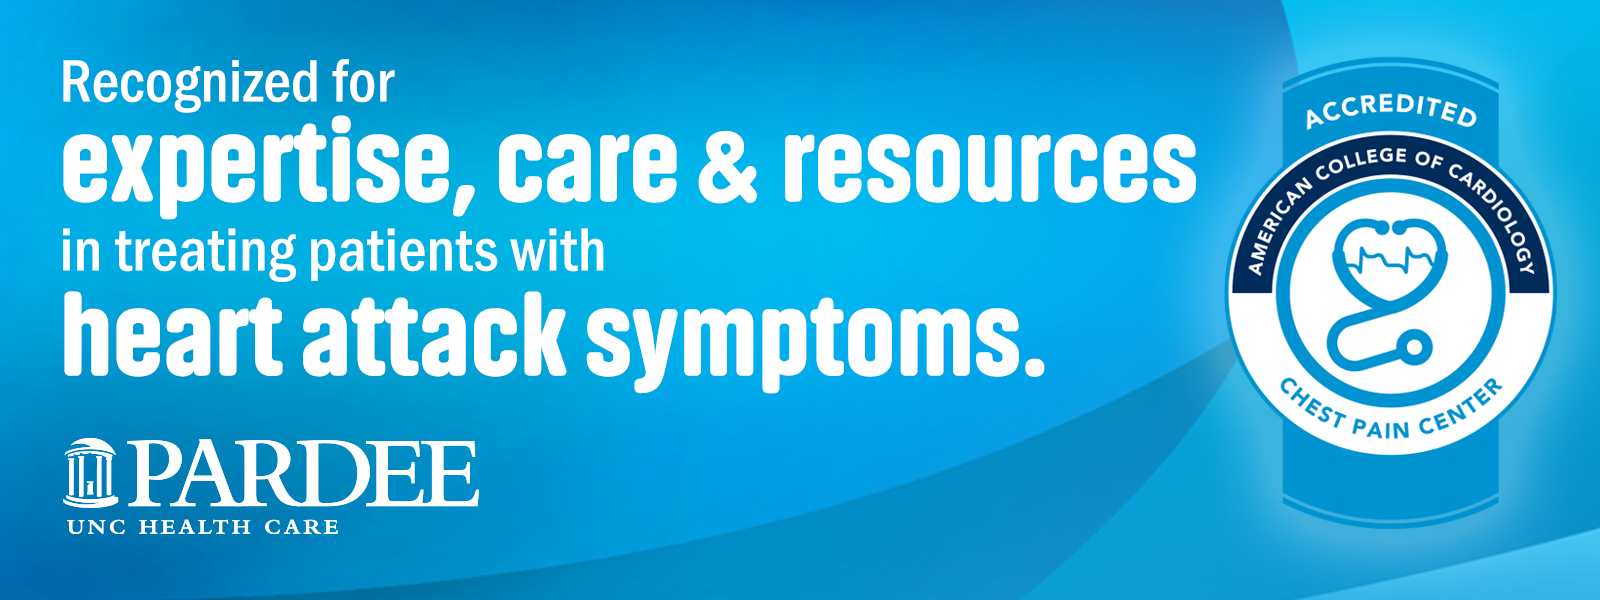 Recognized for expertise, care and resources in treating patients with heart attack symptoms